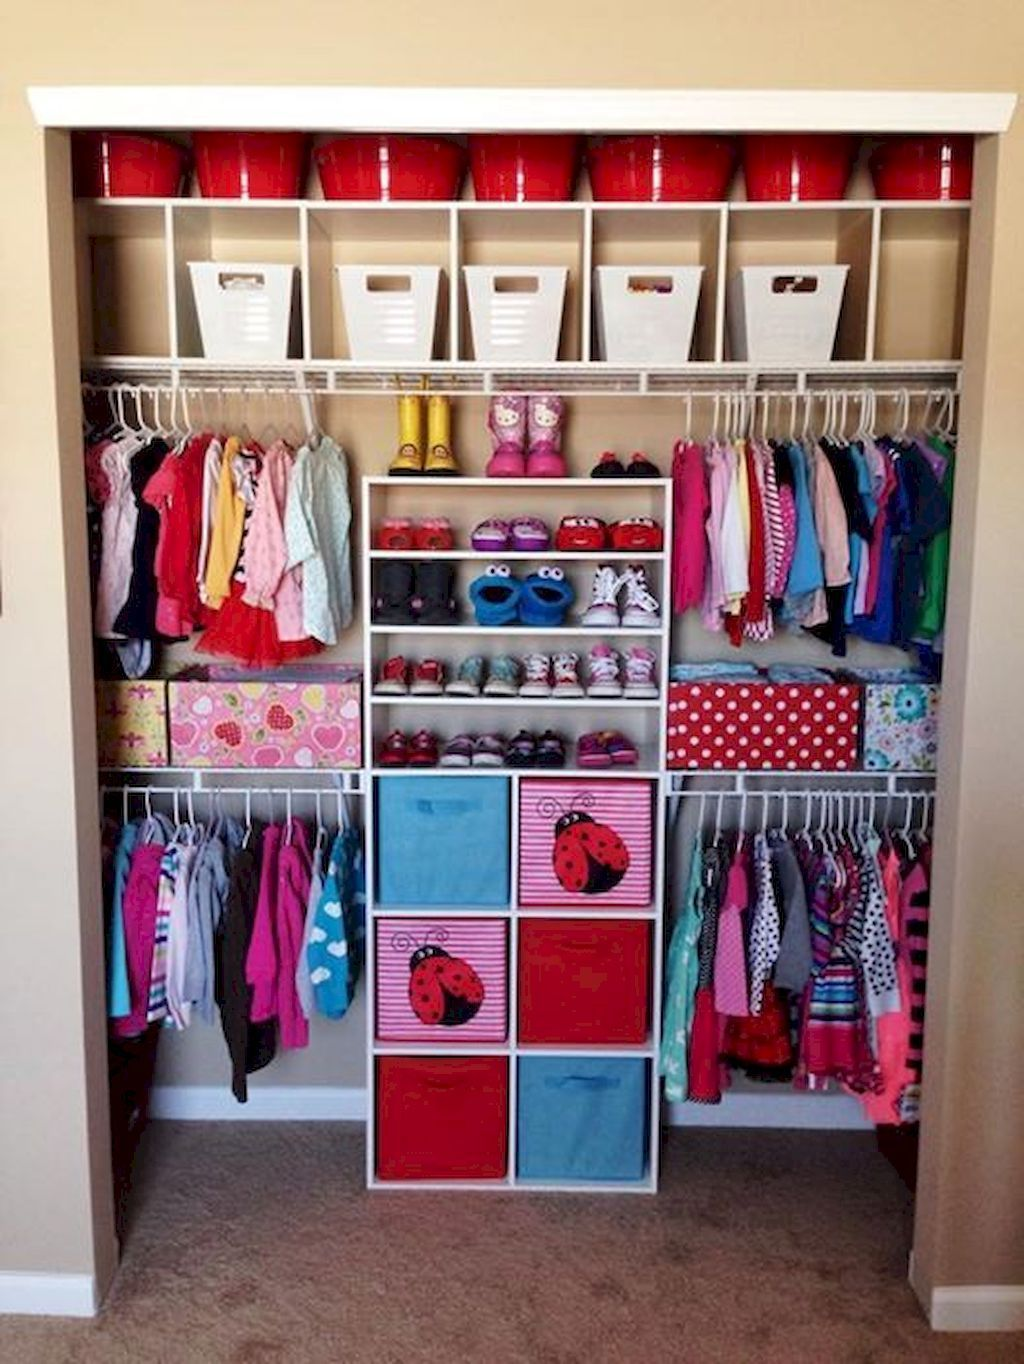 65 Clever Kids Bedroom Organization And Tips Ideas Homixover Com Organization Bedroom Kids Bedroom Organization Kids Room Organization